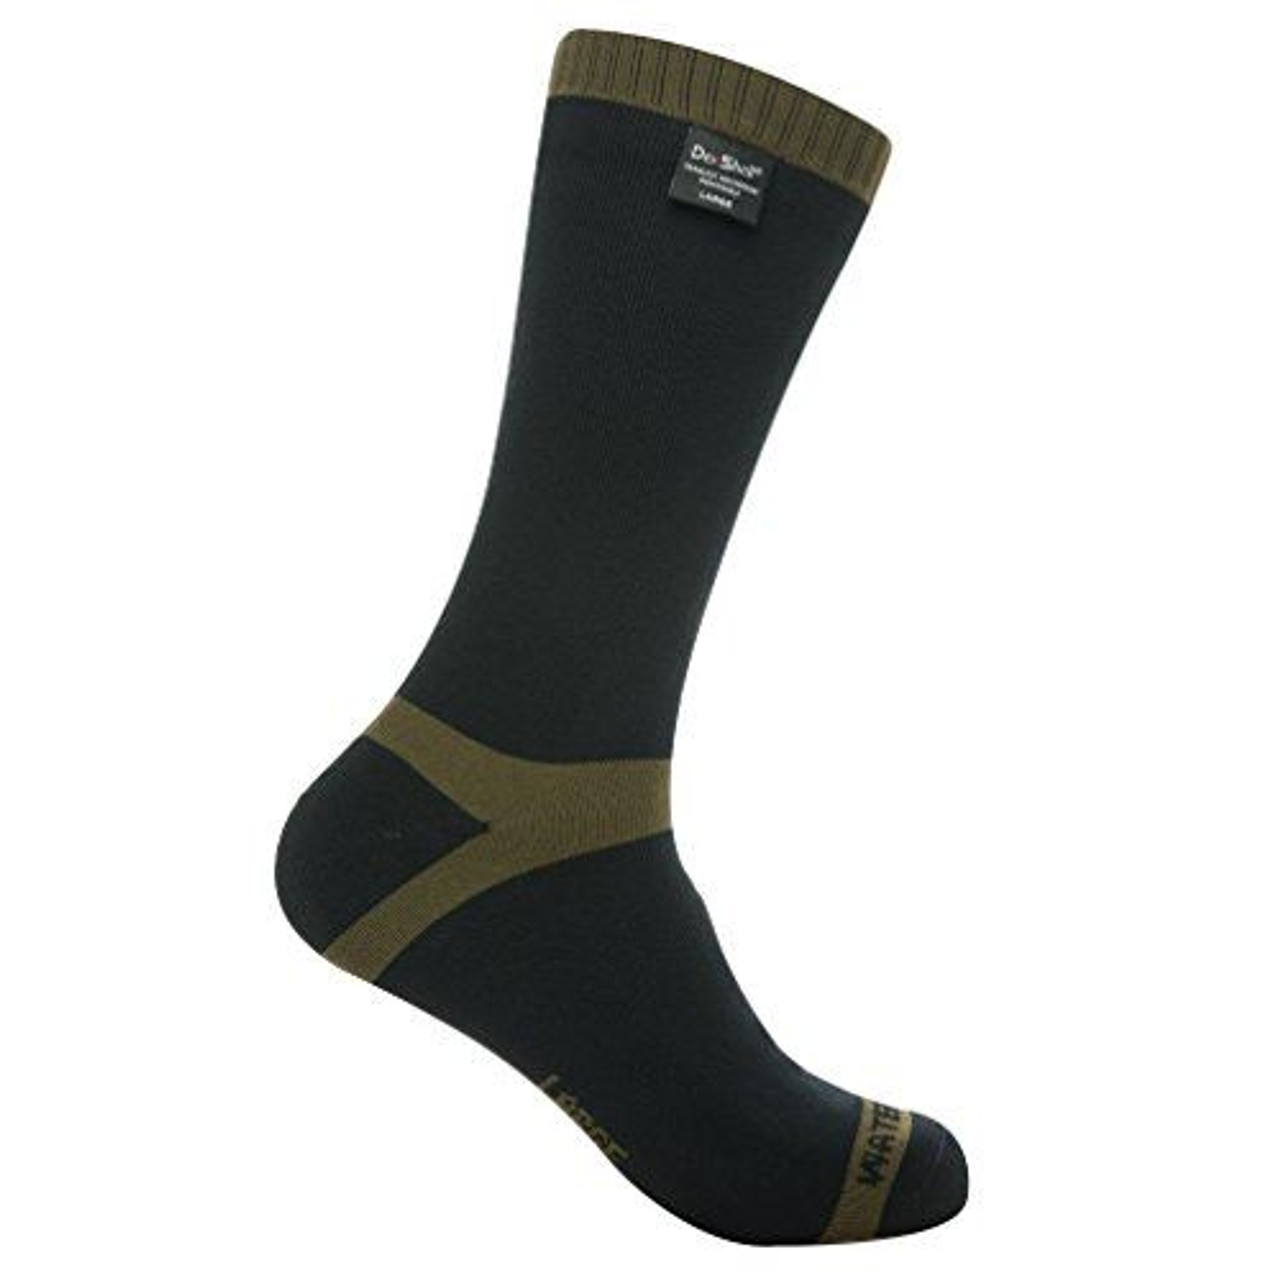 DexShell Waterproof Trekking Socks, Large